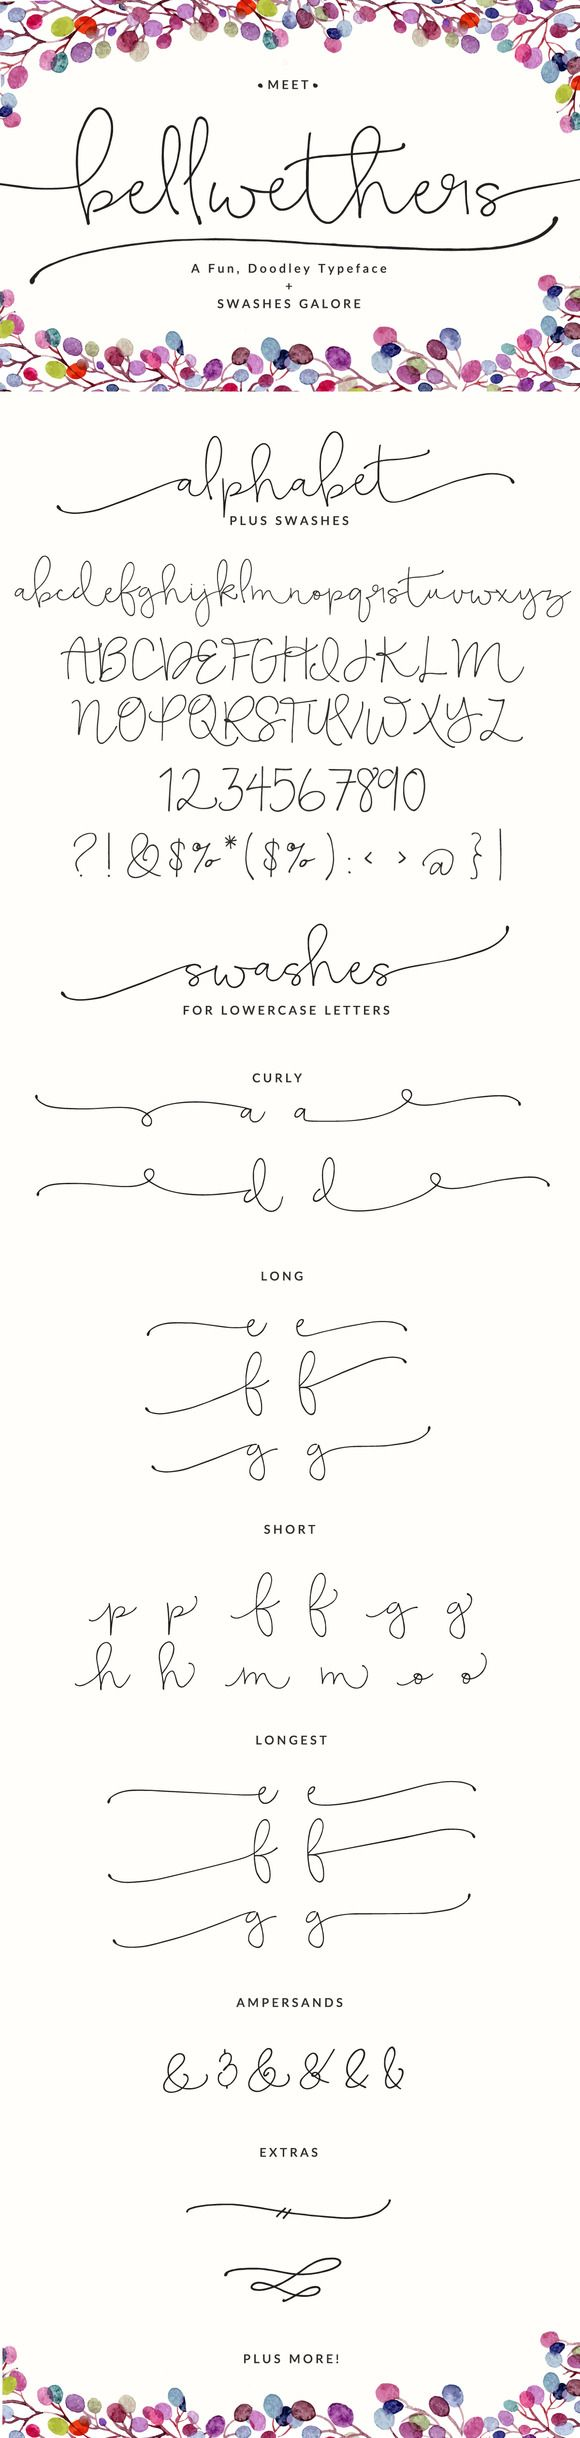 Meet the latest Angie Makes font... Bellwethers. This Modern Calligraphy…